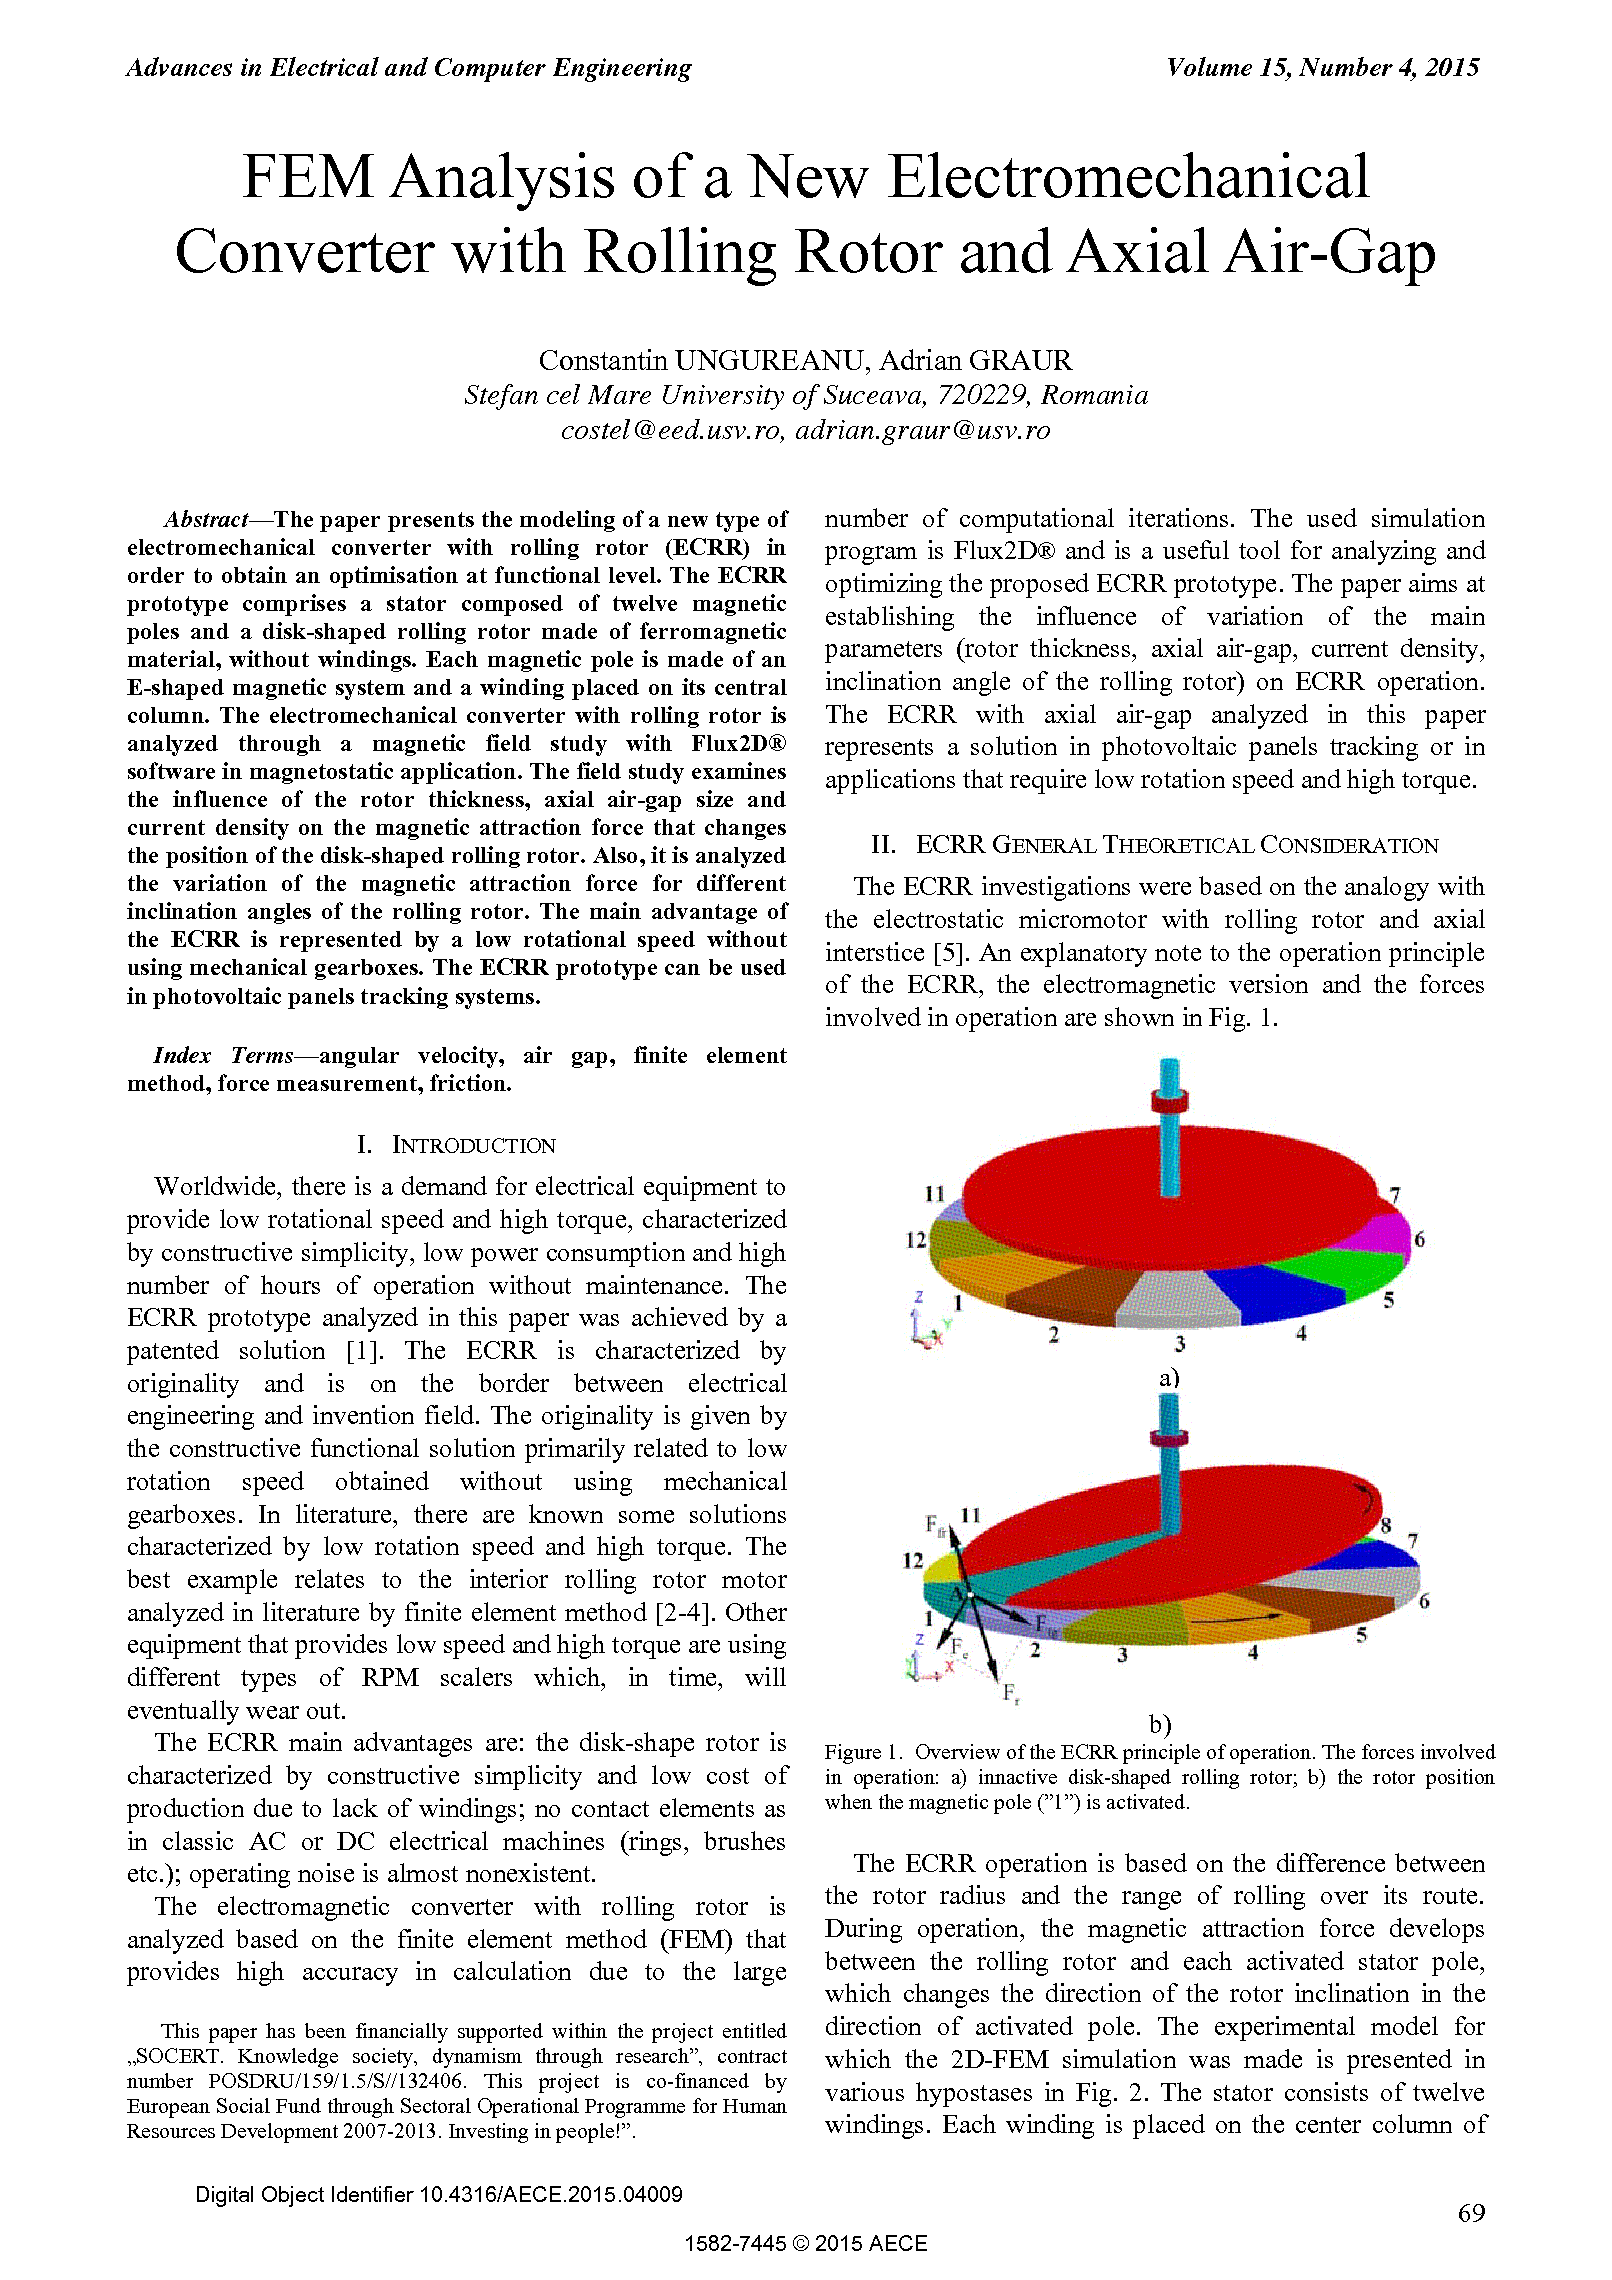 PDF Quickview for paper with DOI:10.4316/AECE.2015.04009